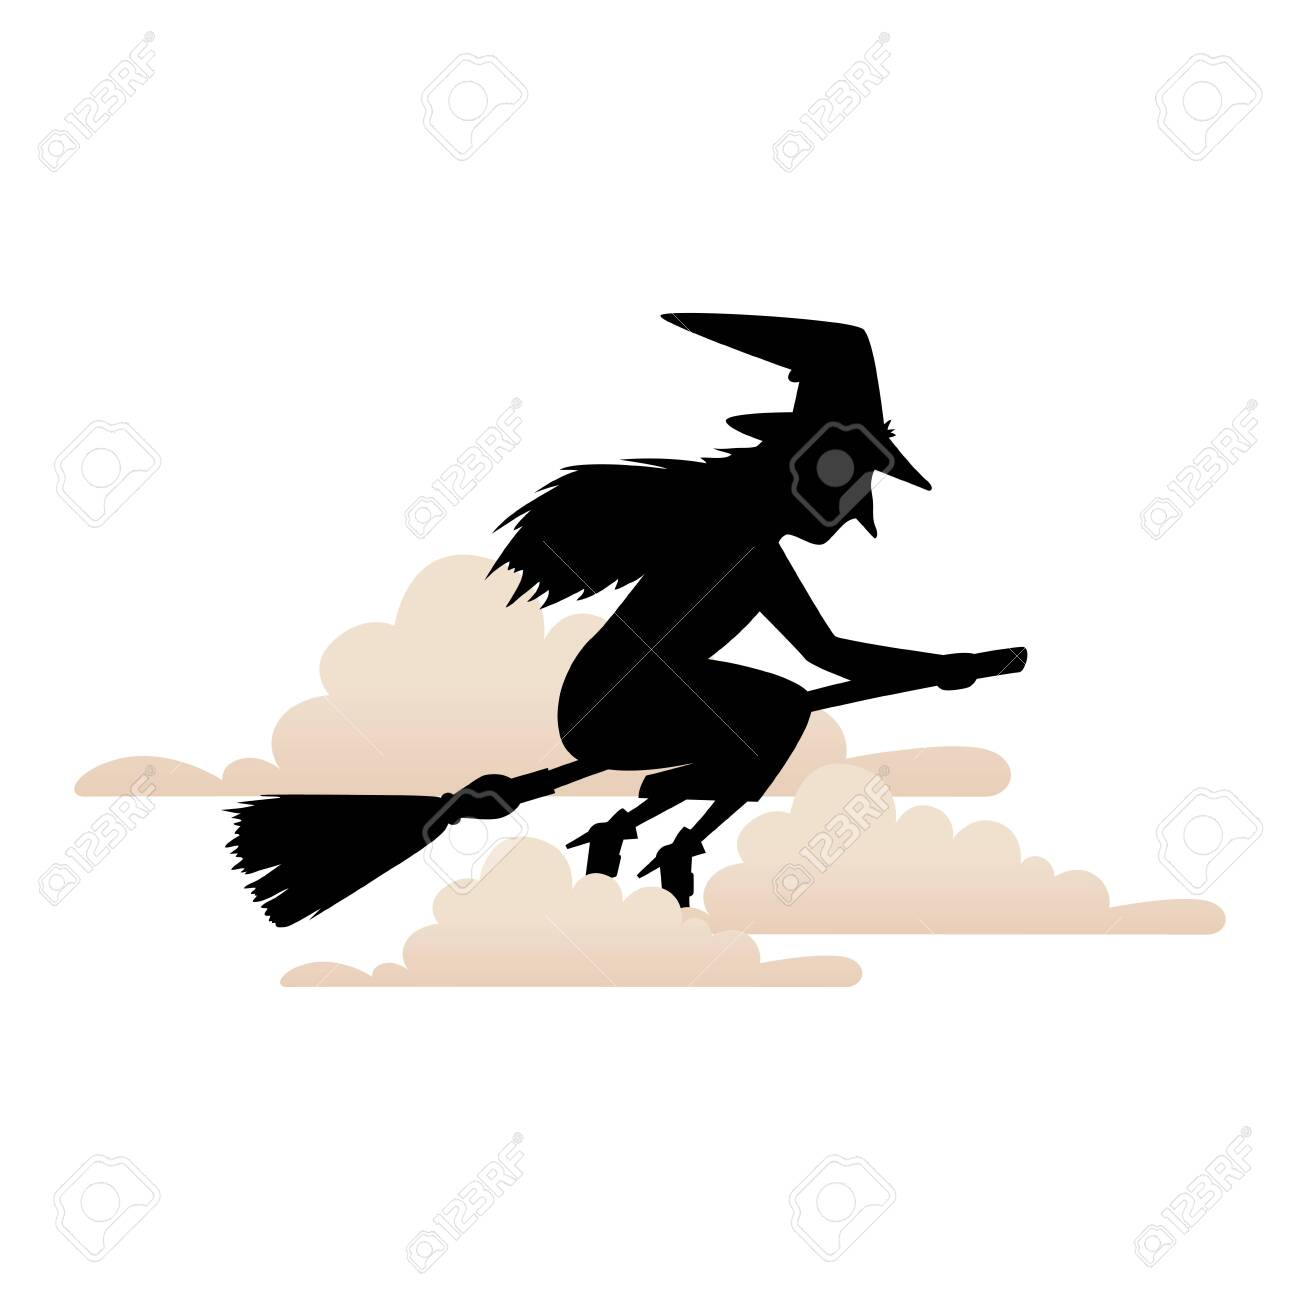 witch silhouette flying in broom isolated icon vector illustration design - 133150702